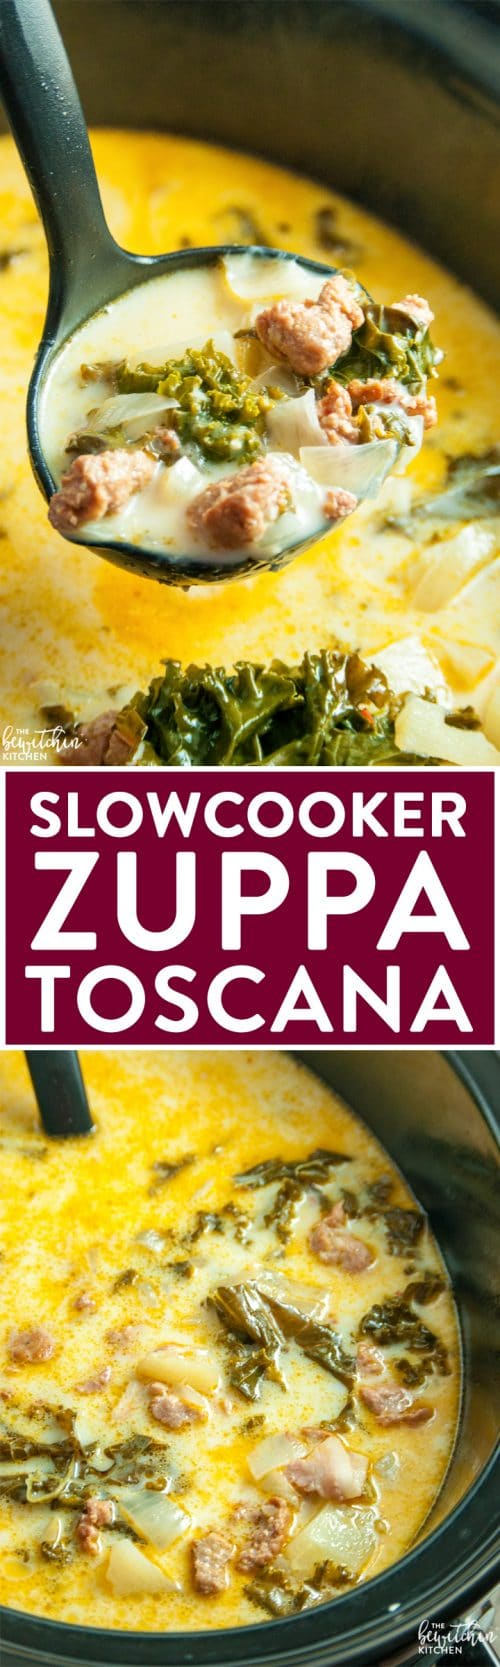 Slow Cooker Zuppa Toscana - a simple soup recipe that's based off an Olive Garden favorite.   thebewitchinkitchen.com